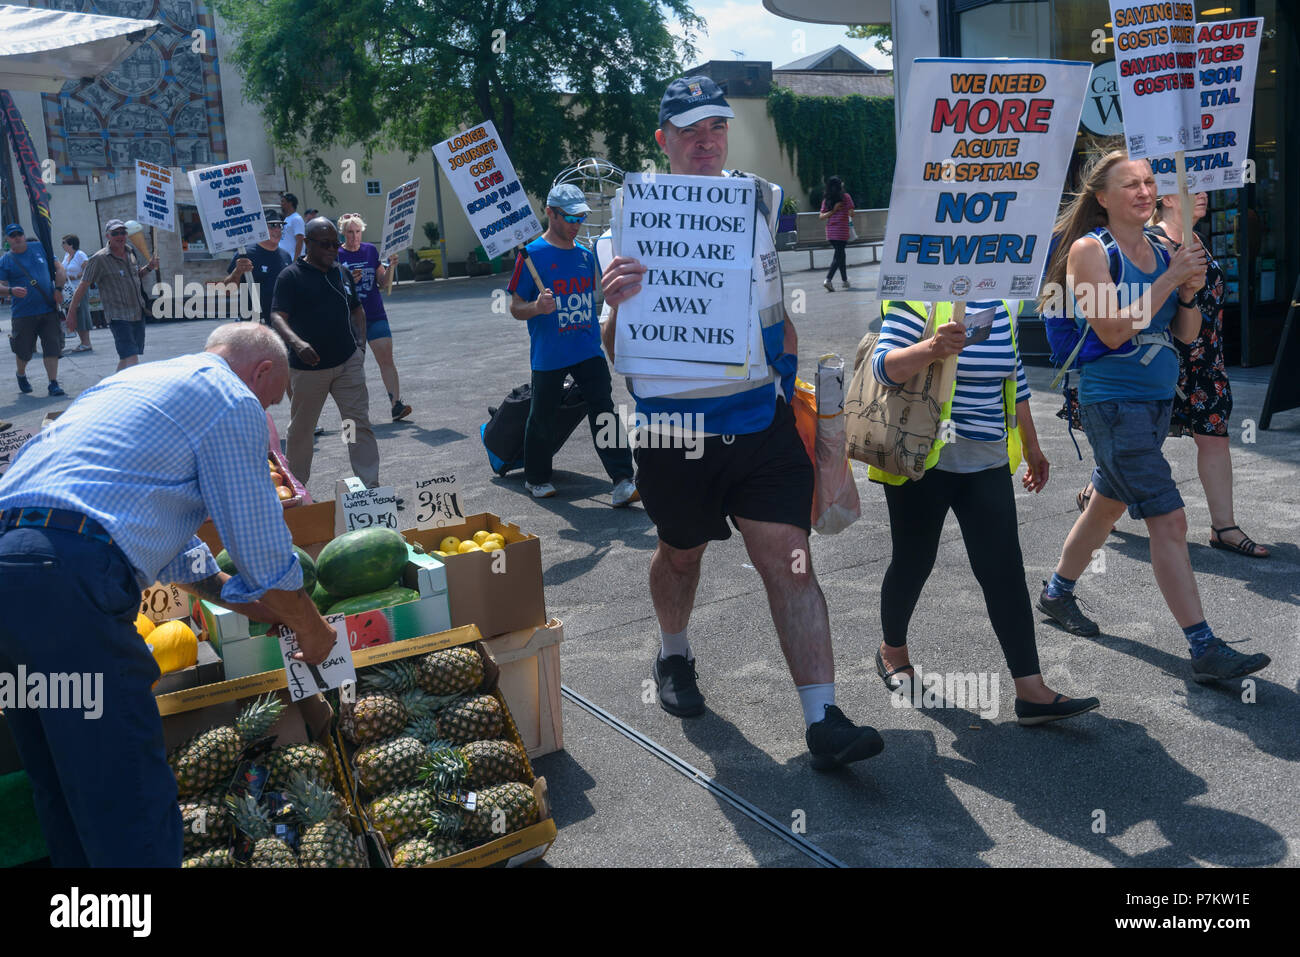 London, UK. 7th July 2018. Keep Our St Helier Hospital (KOSHH) campaigners against the closure of acute facilities at Epsom and St Helier Hospitals in south London celebrate the 70th Birthday of the NHS by marching from Manor Park through Sutton High St to a rally in front of St Helier Hospital.  The closures are prompted by government cuts which call for huge savings by the trust, and would Credit: Peter Marshall/Alamy Live News Stock Photo